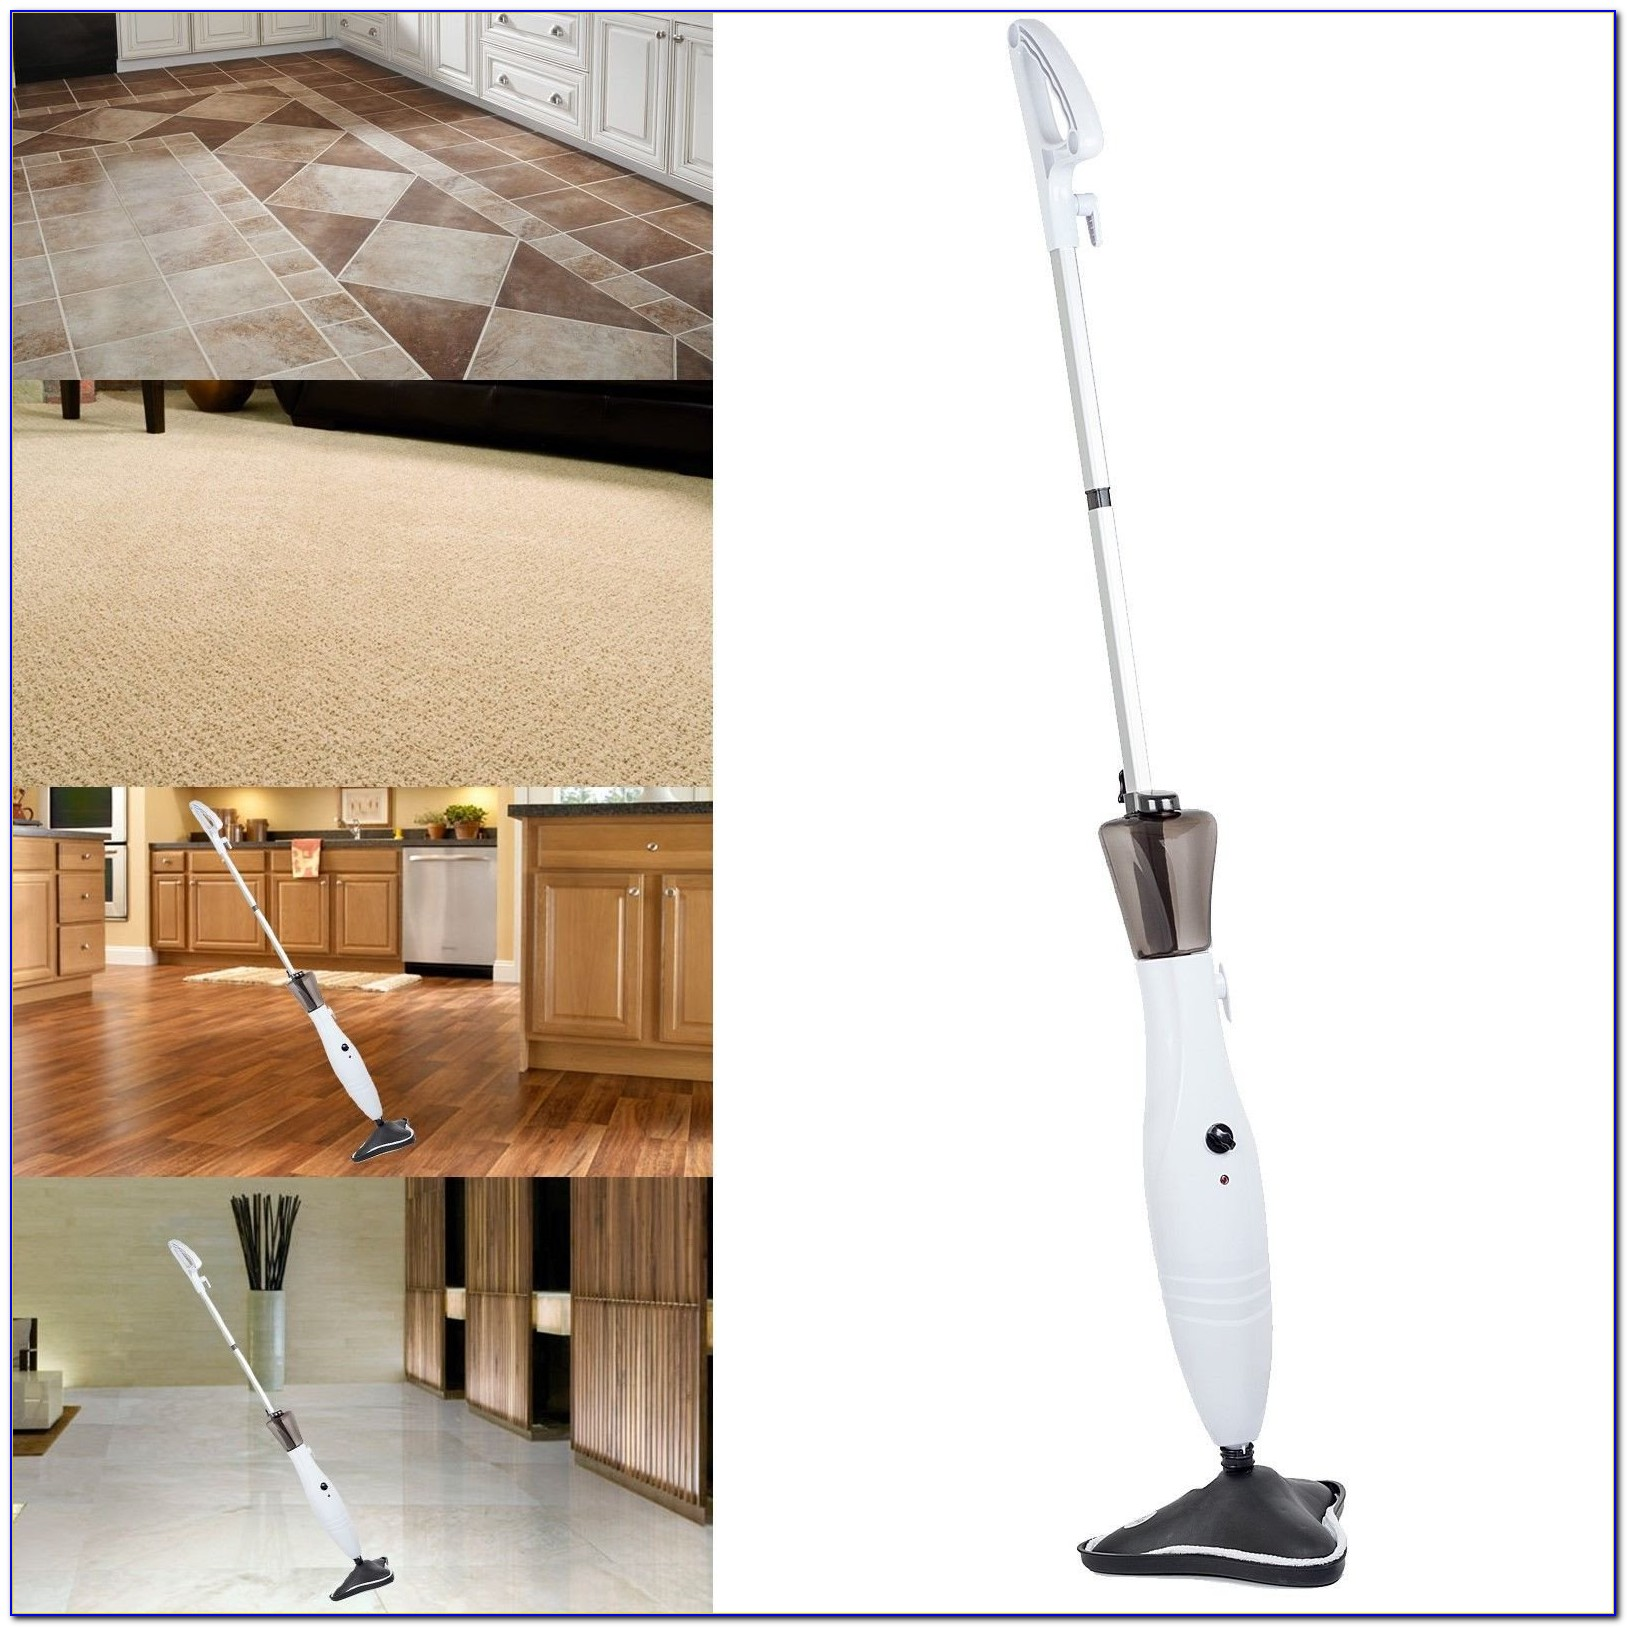 Steam Cleaners For Porcelain Tile Floors